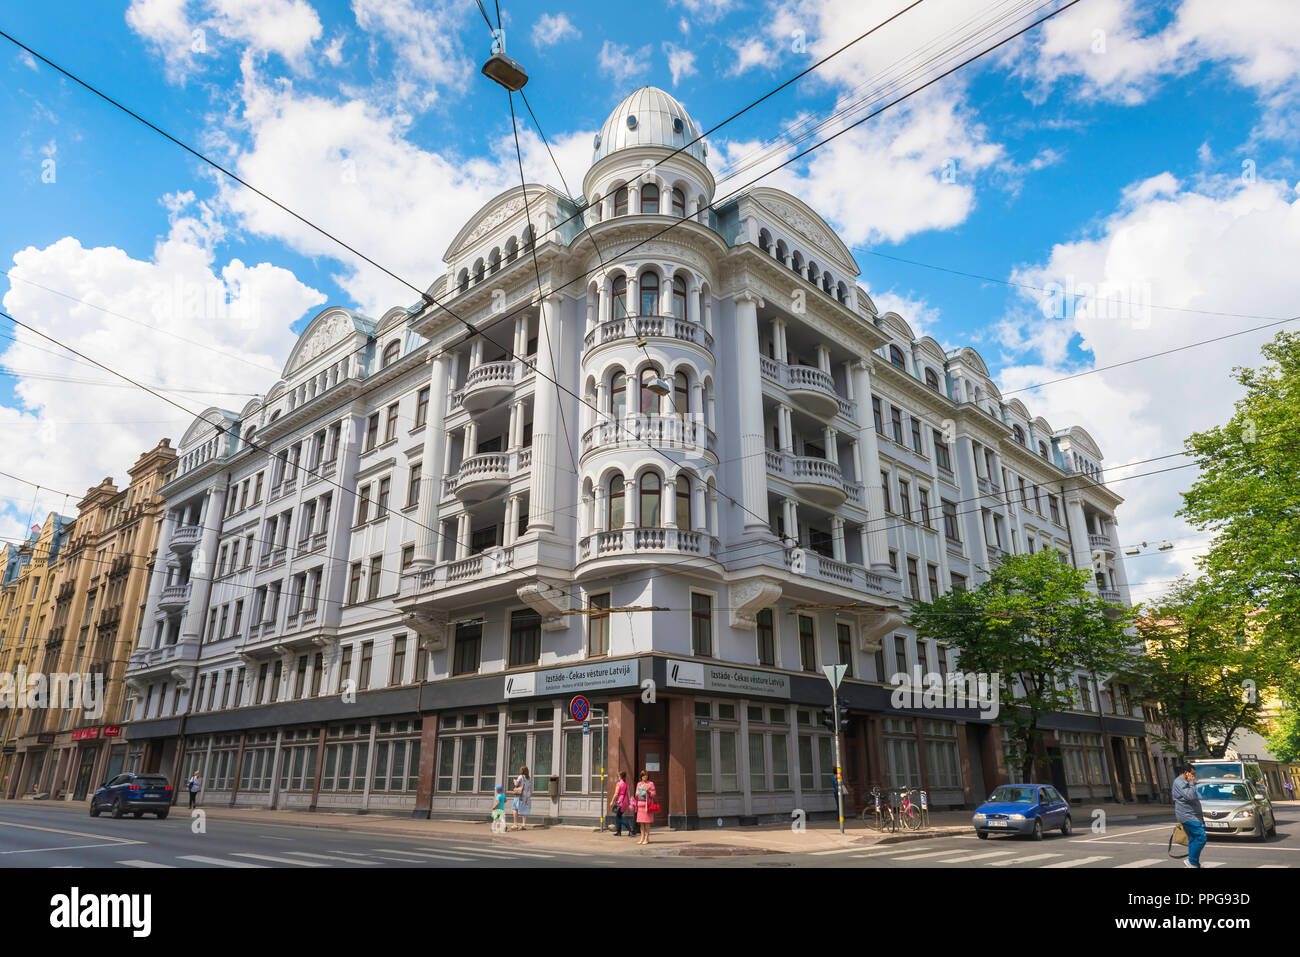 Riga Corner House, view of the former headquarters of the KGB Soviet secret police (Brivibas Iela 69) in the center of Riga, Latvia. - Stock Image